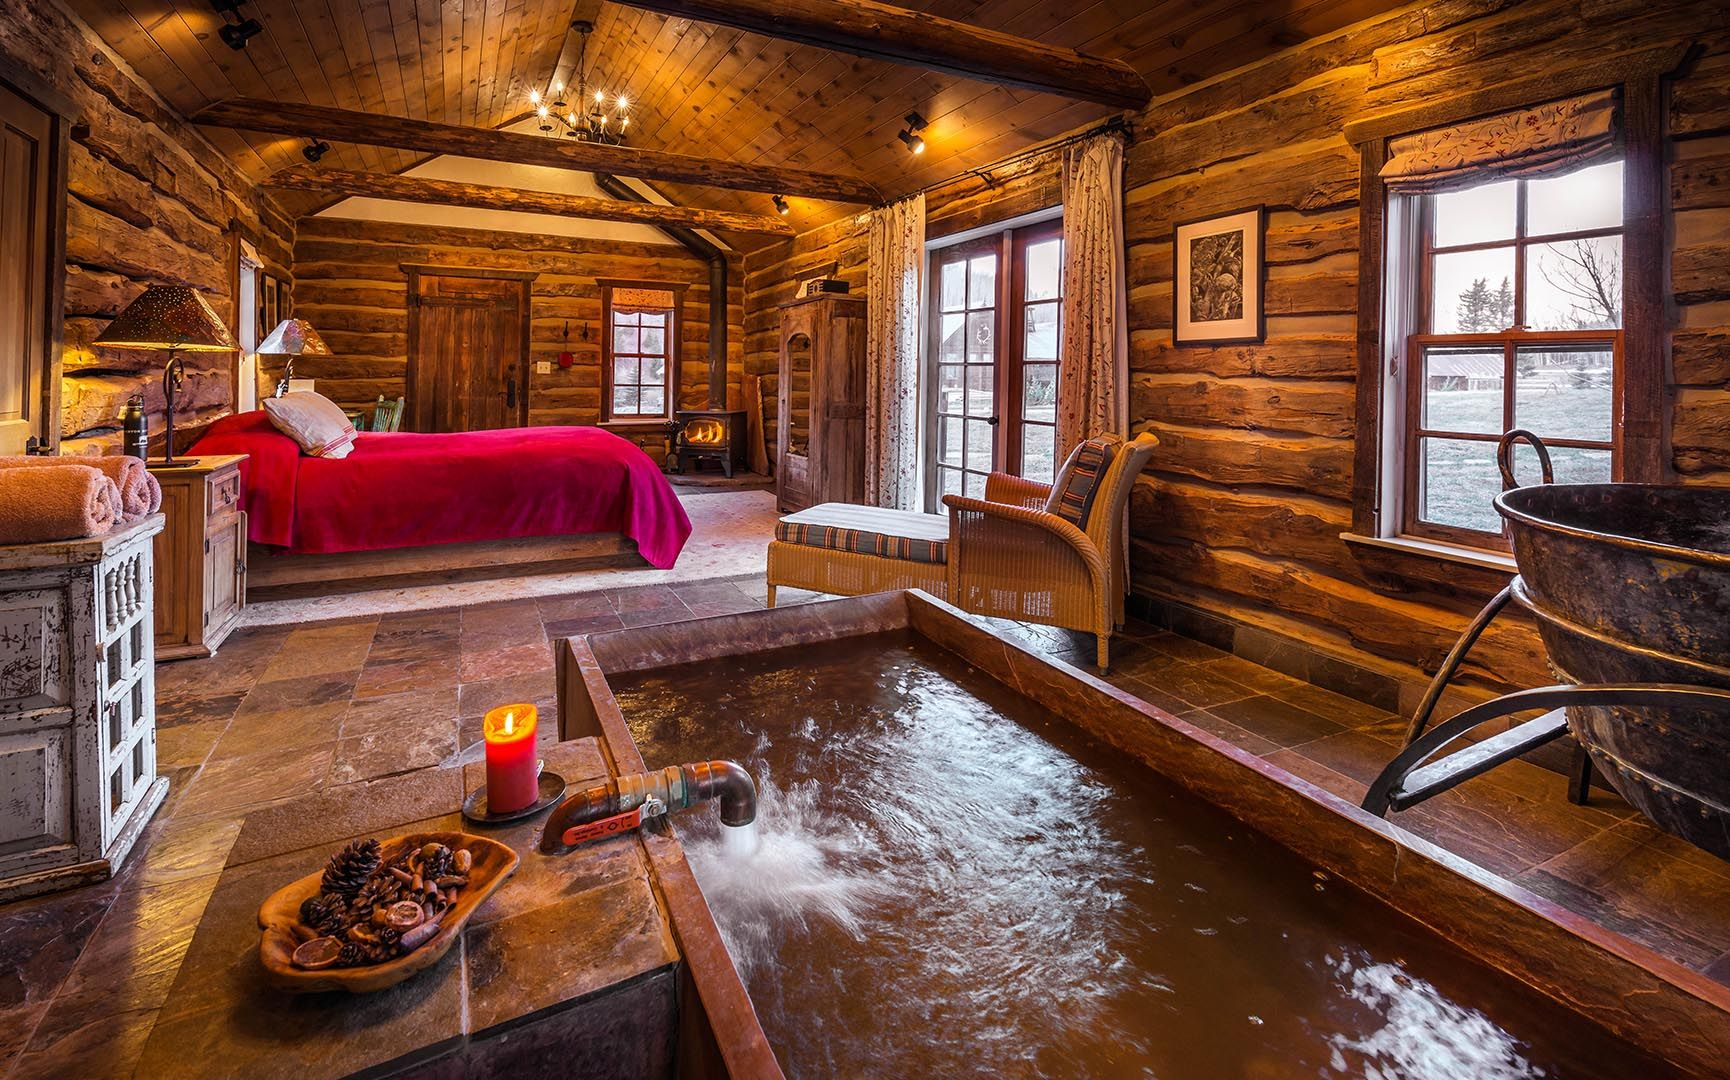 The Interior Of Well House Cabin. With Private Indoor Hot Spring Tub, And  Gas